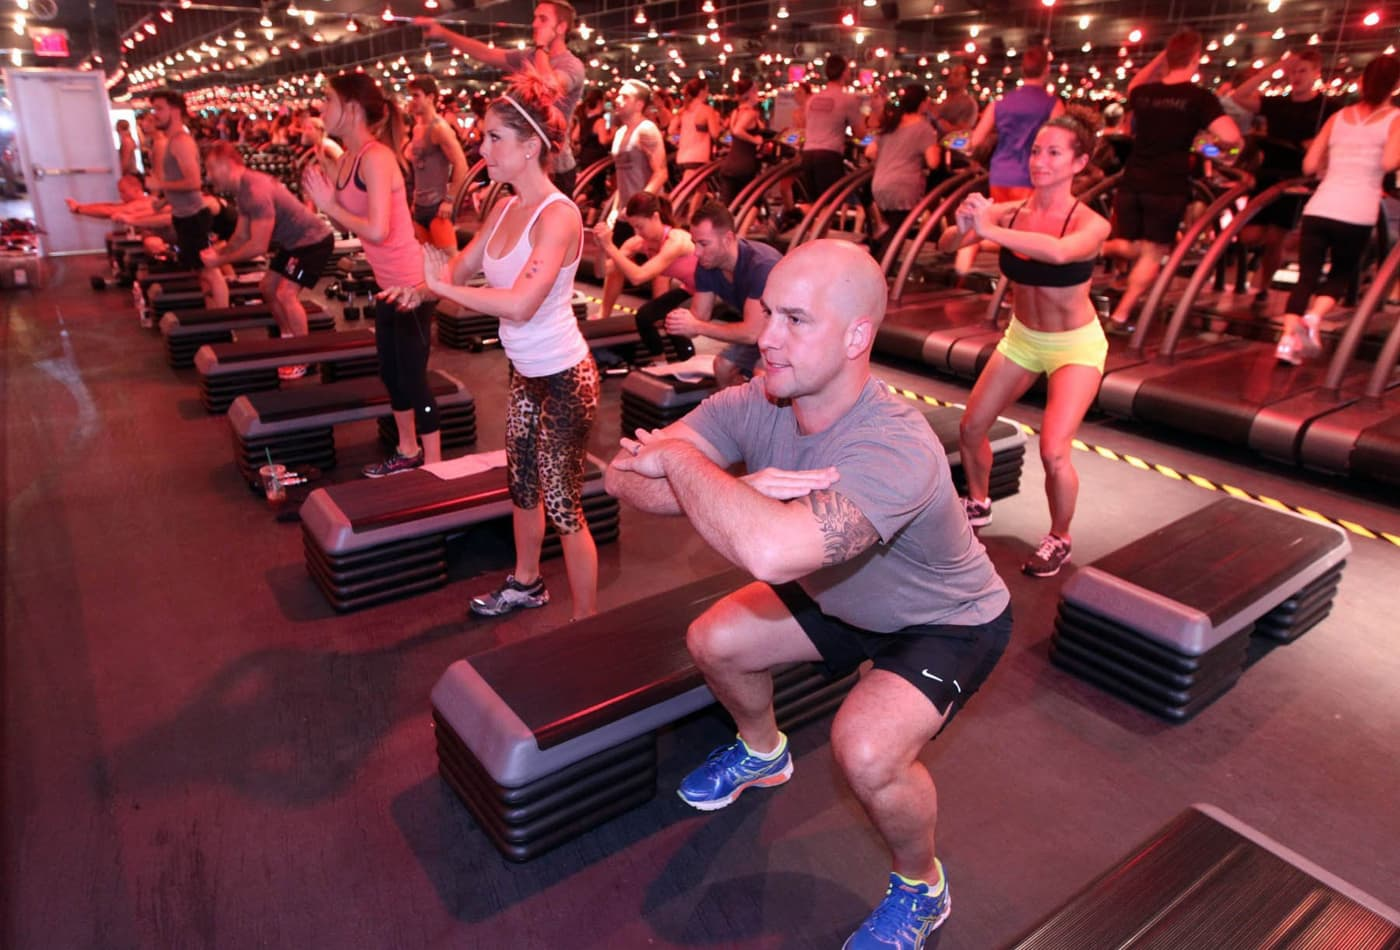 Boutique fitness studios are going digital during coronavirus pandemic, but they're not making money yet